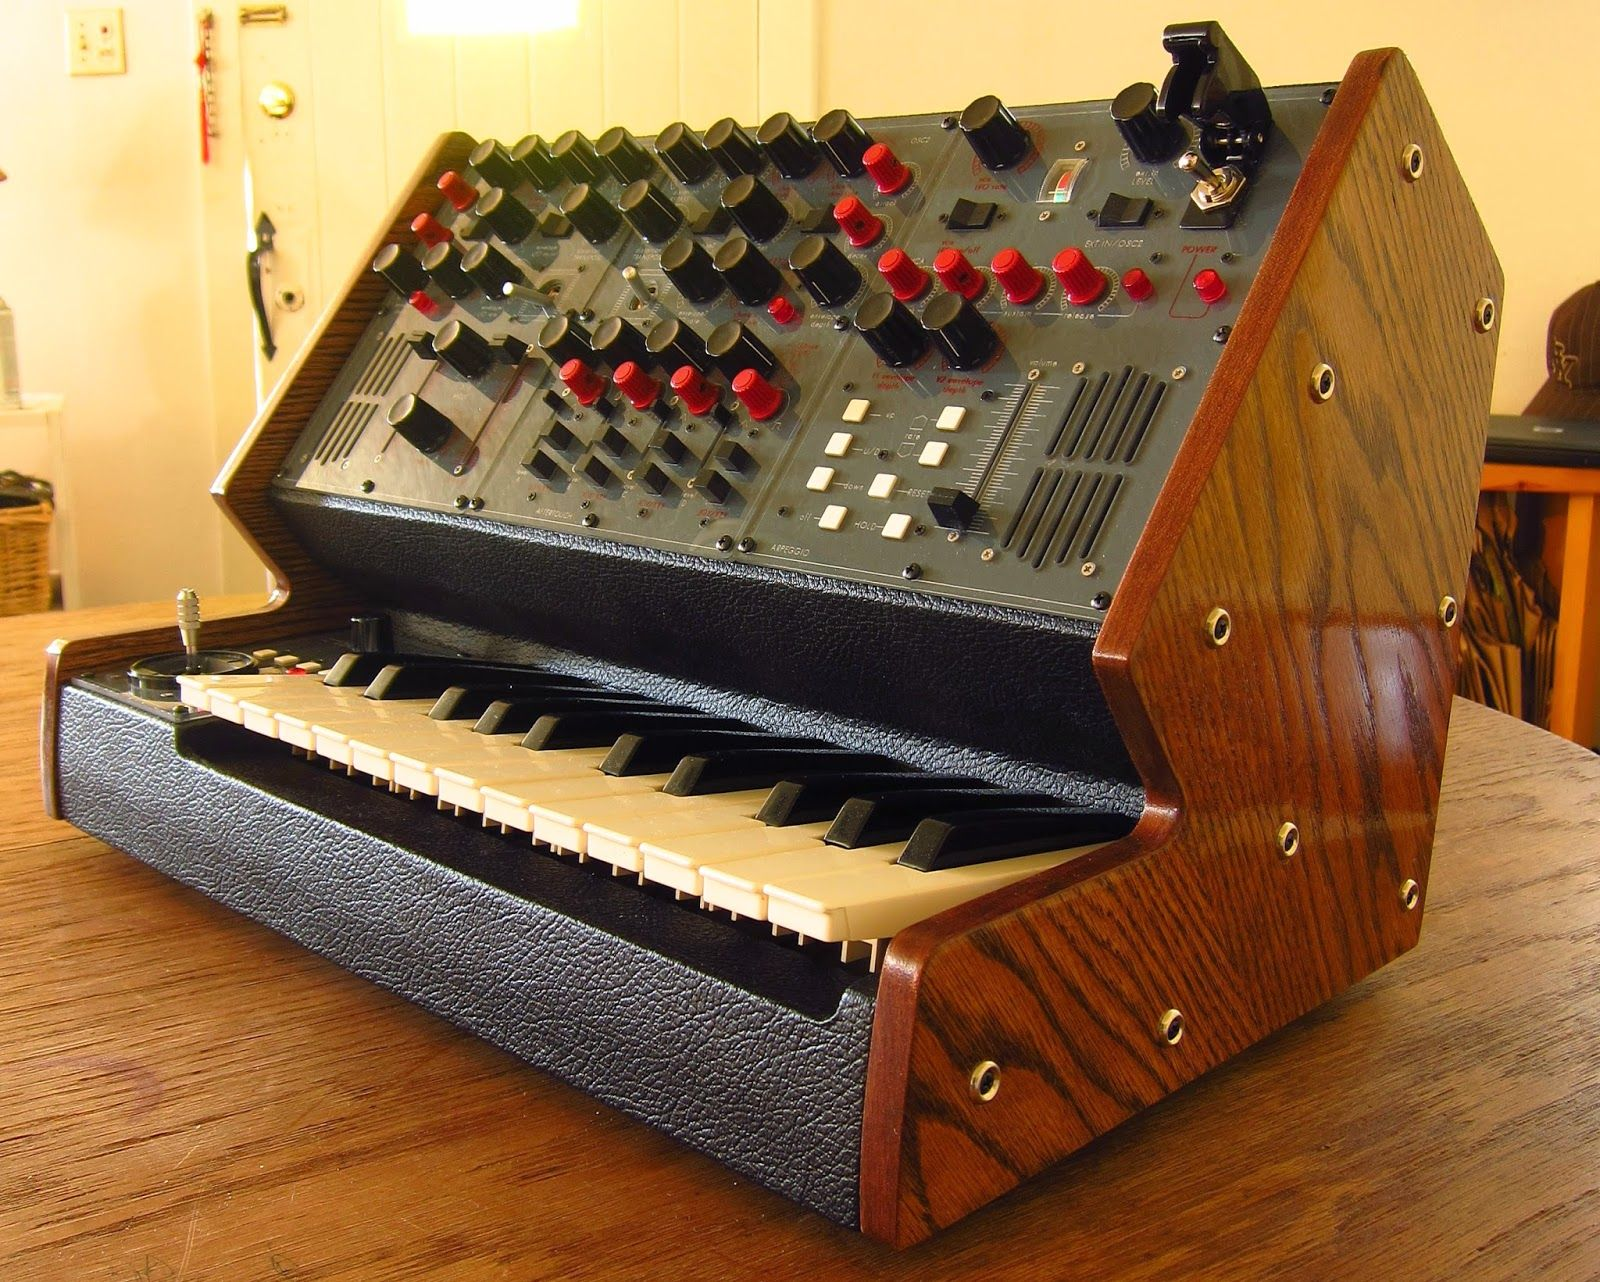 Cool custom synth www.noystoise.com/